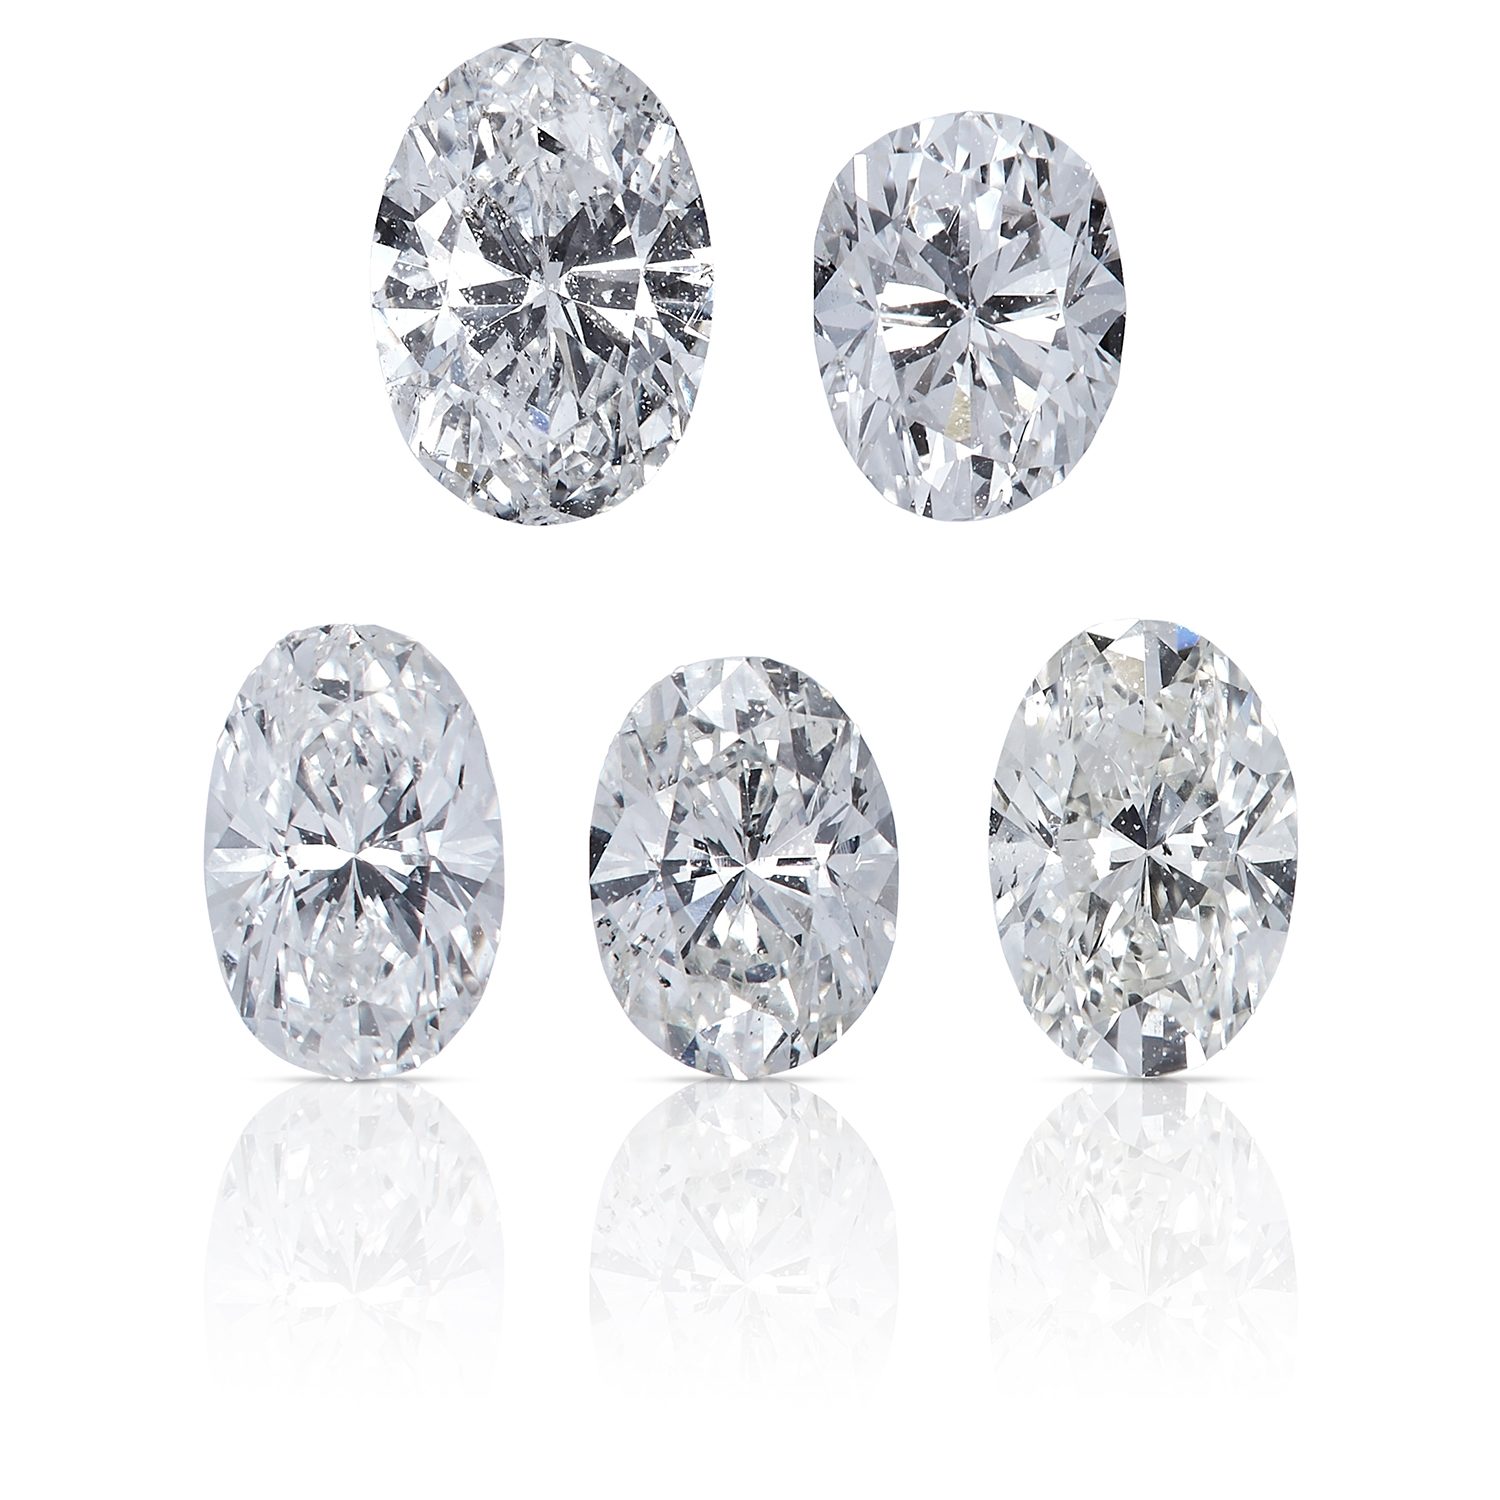 FIVE OVAL SHAPED BRILLIANT CUT DIAMONDS TOTALLING, 1.01cts, UNMOUNTED.